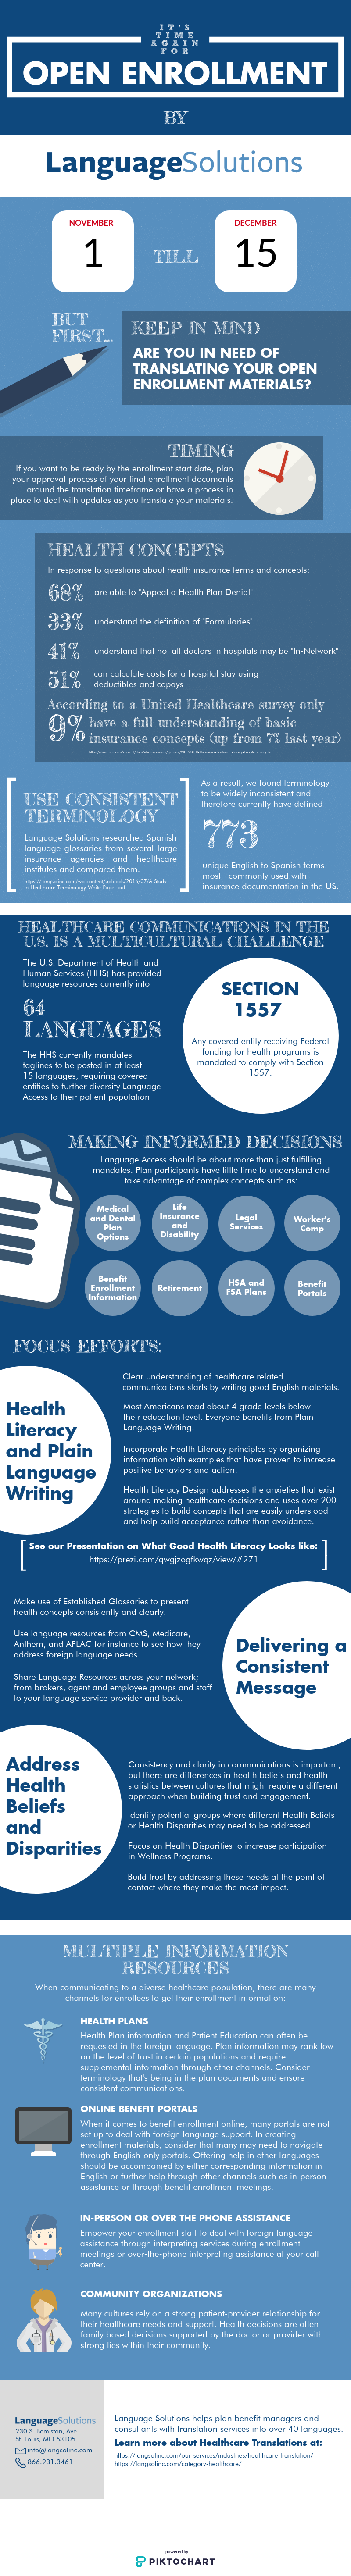 Open Enrollment 2019 Infographic